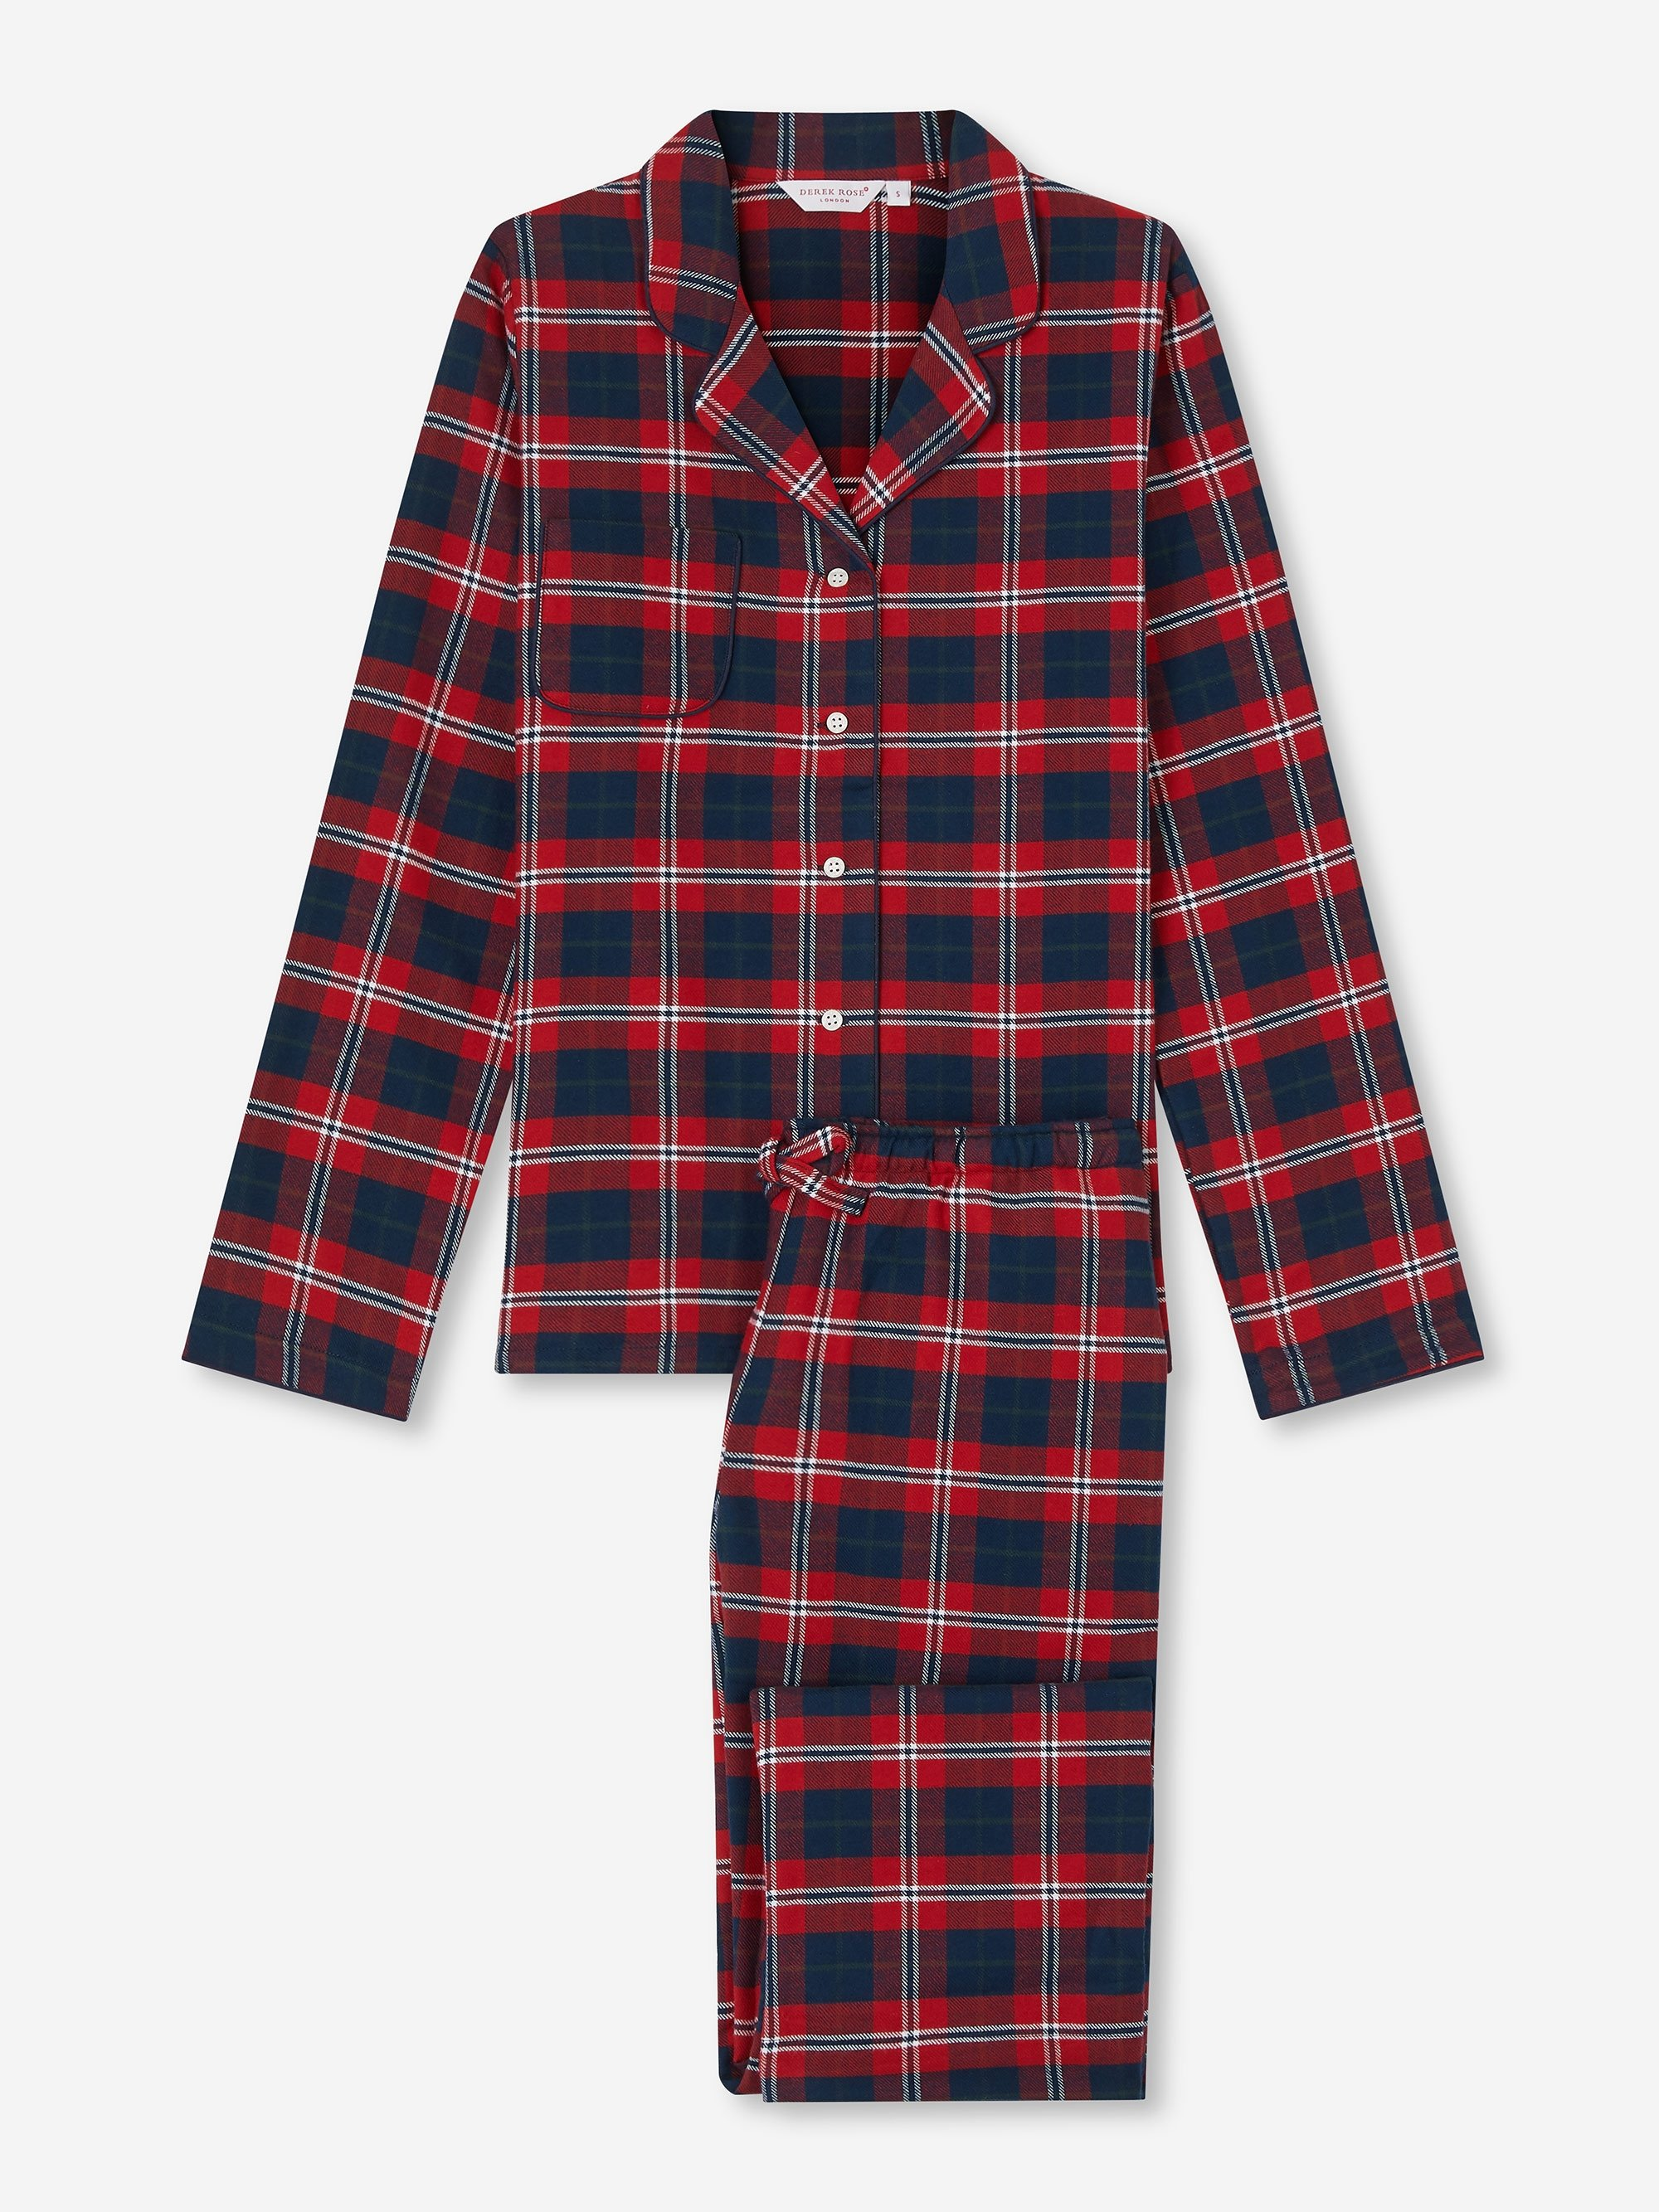 Women's Pyjamas Kelburn 16 Brushed Cotton Check Red